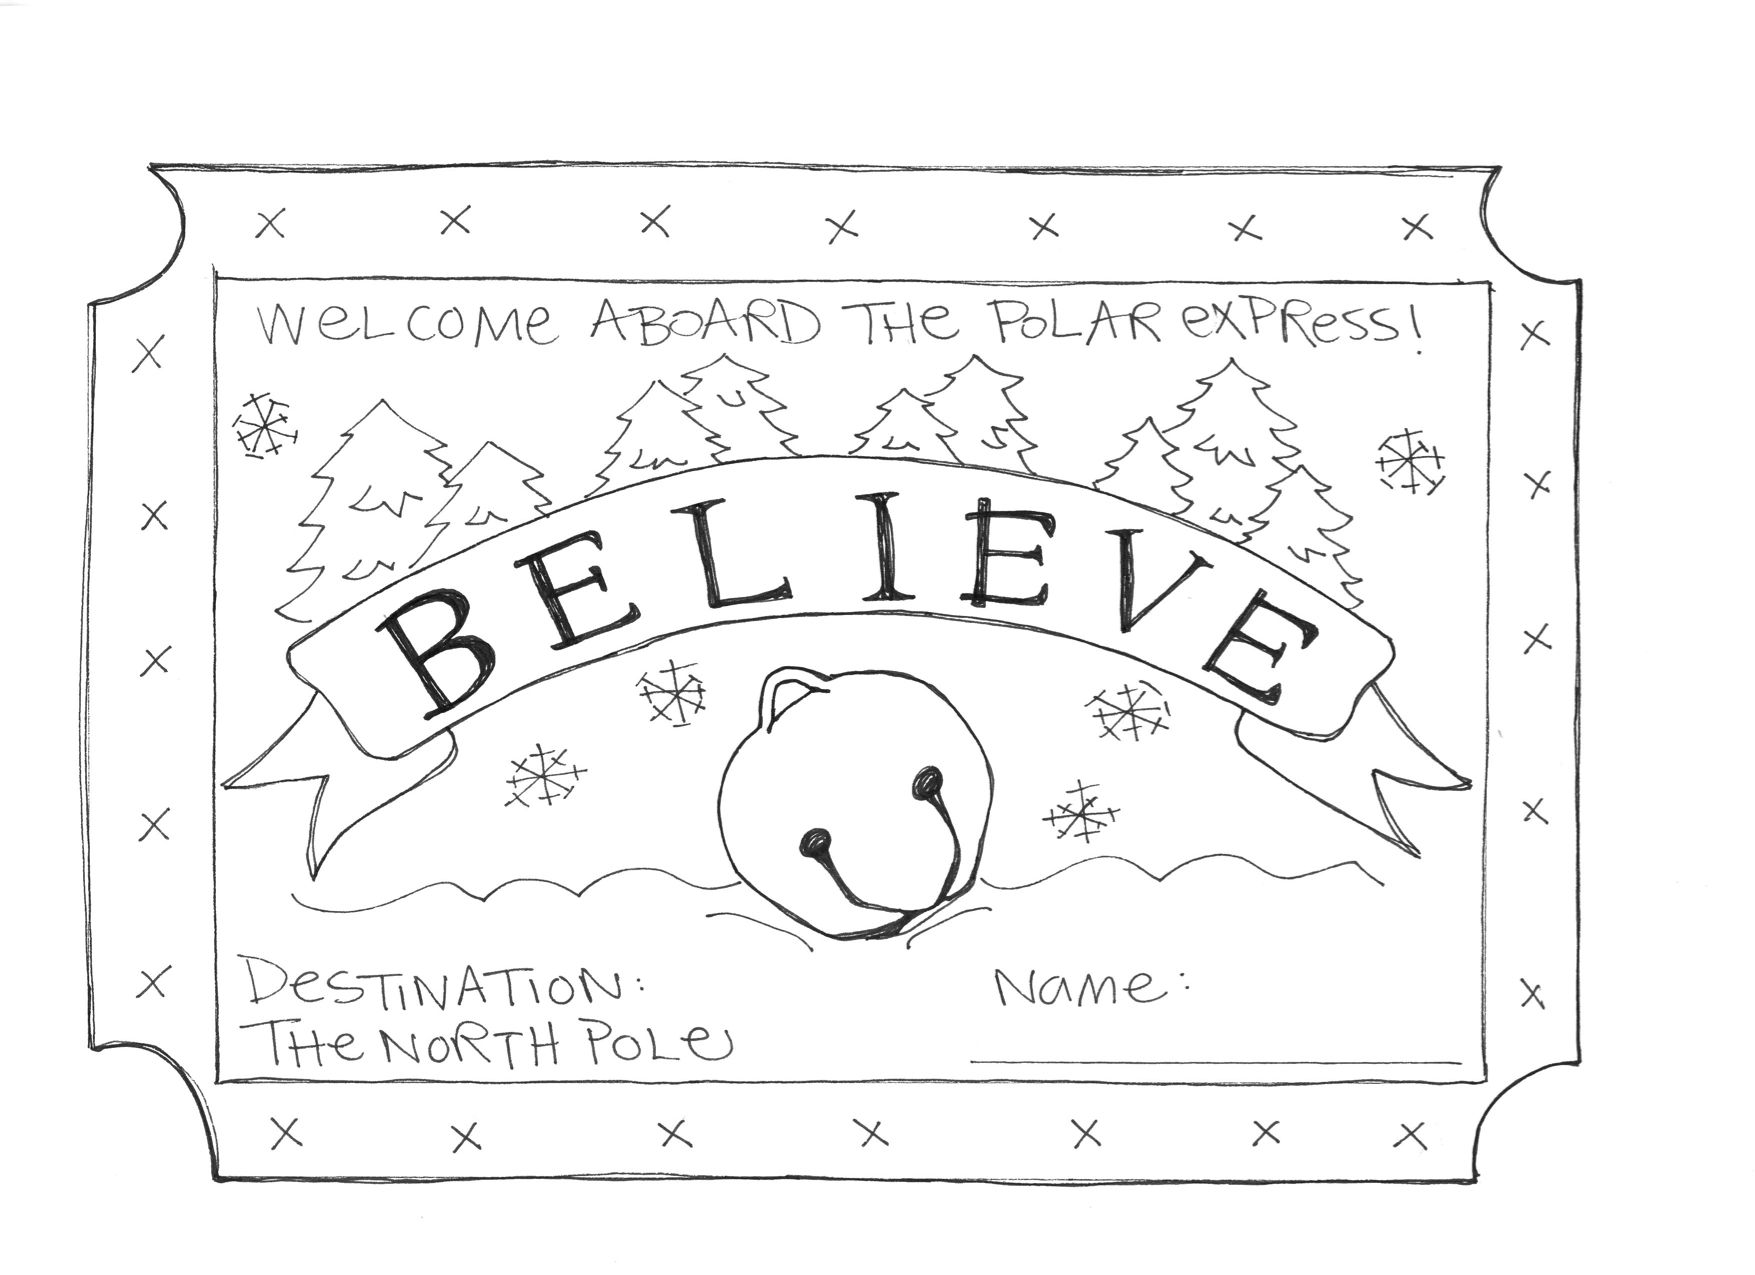 Made This Coloring Sheet For A Polar Express Themed Children S